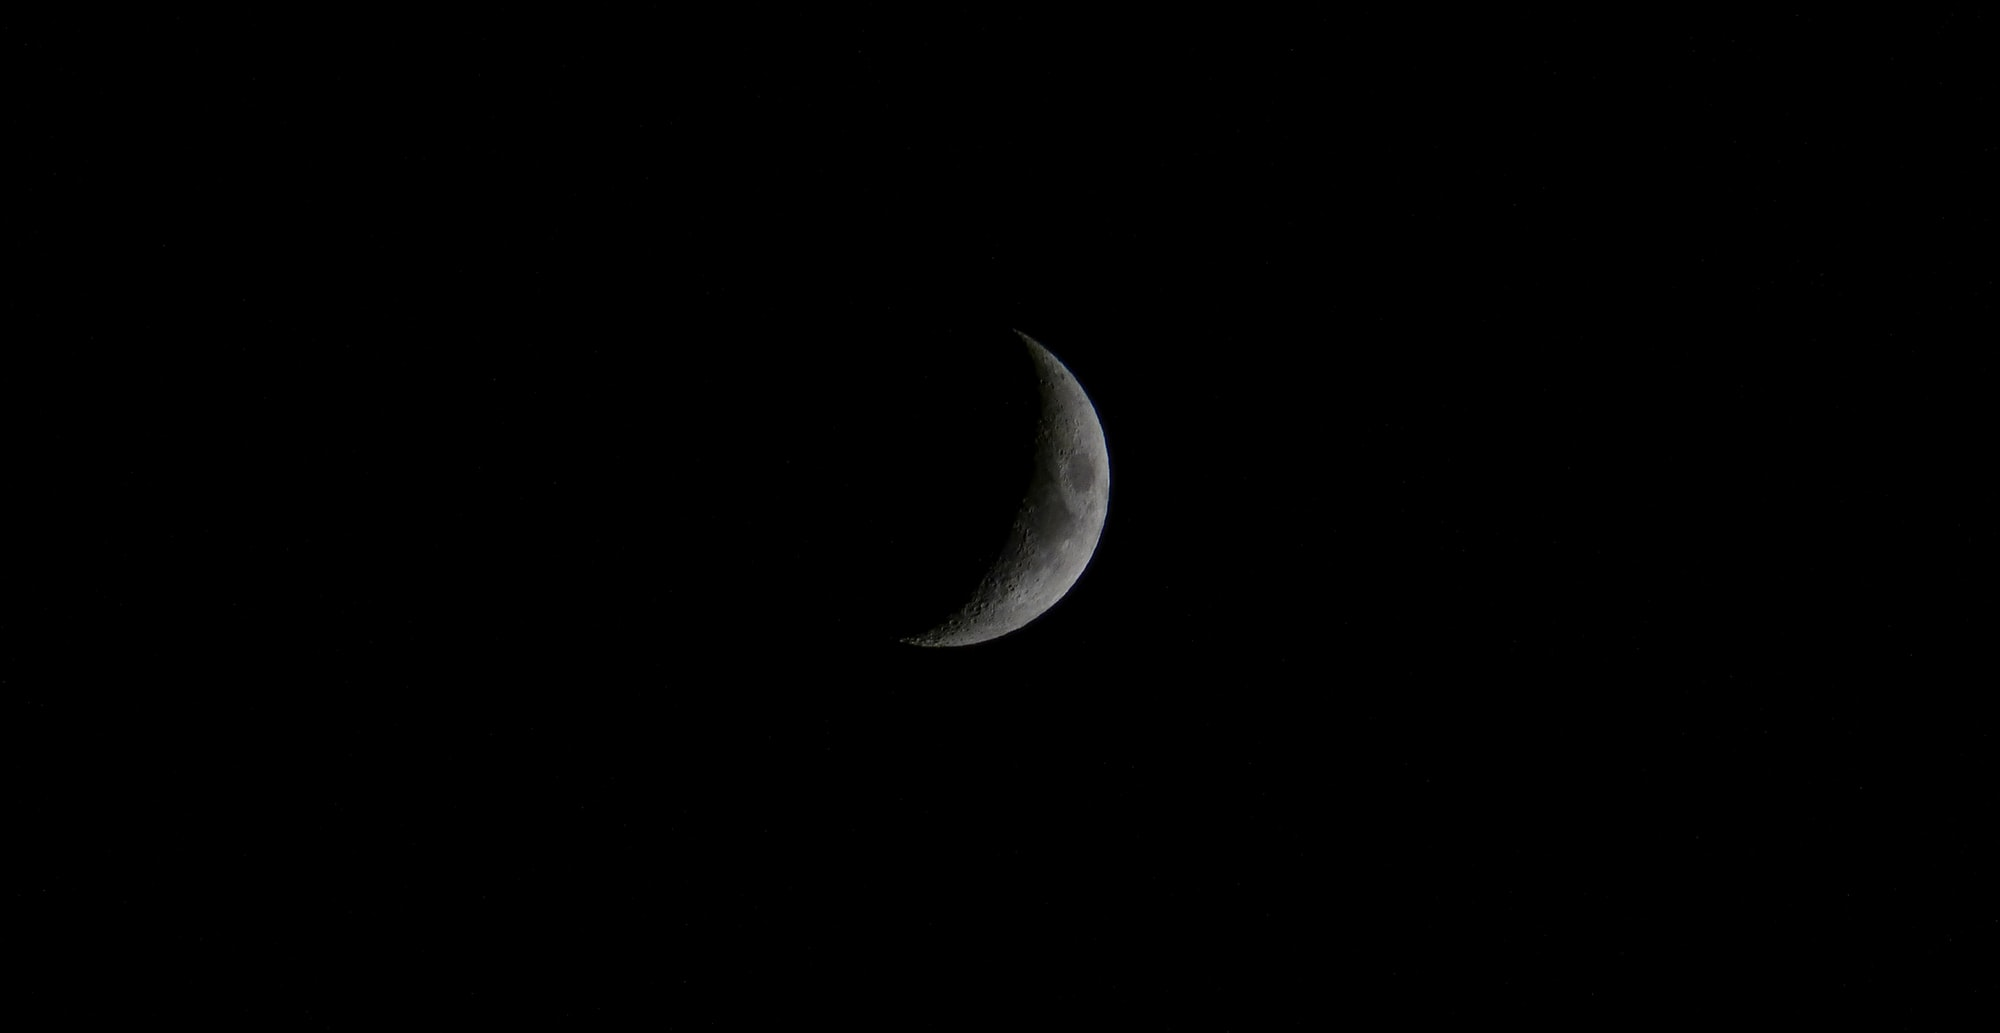 Missed the Moon